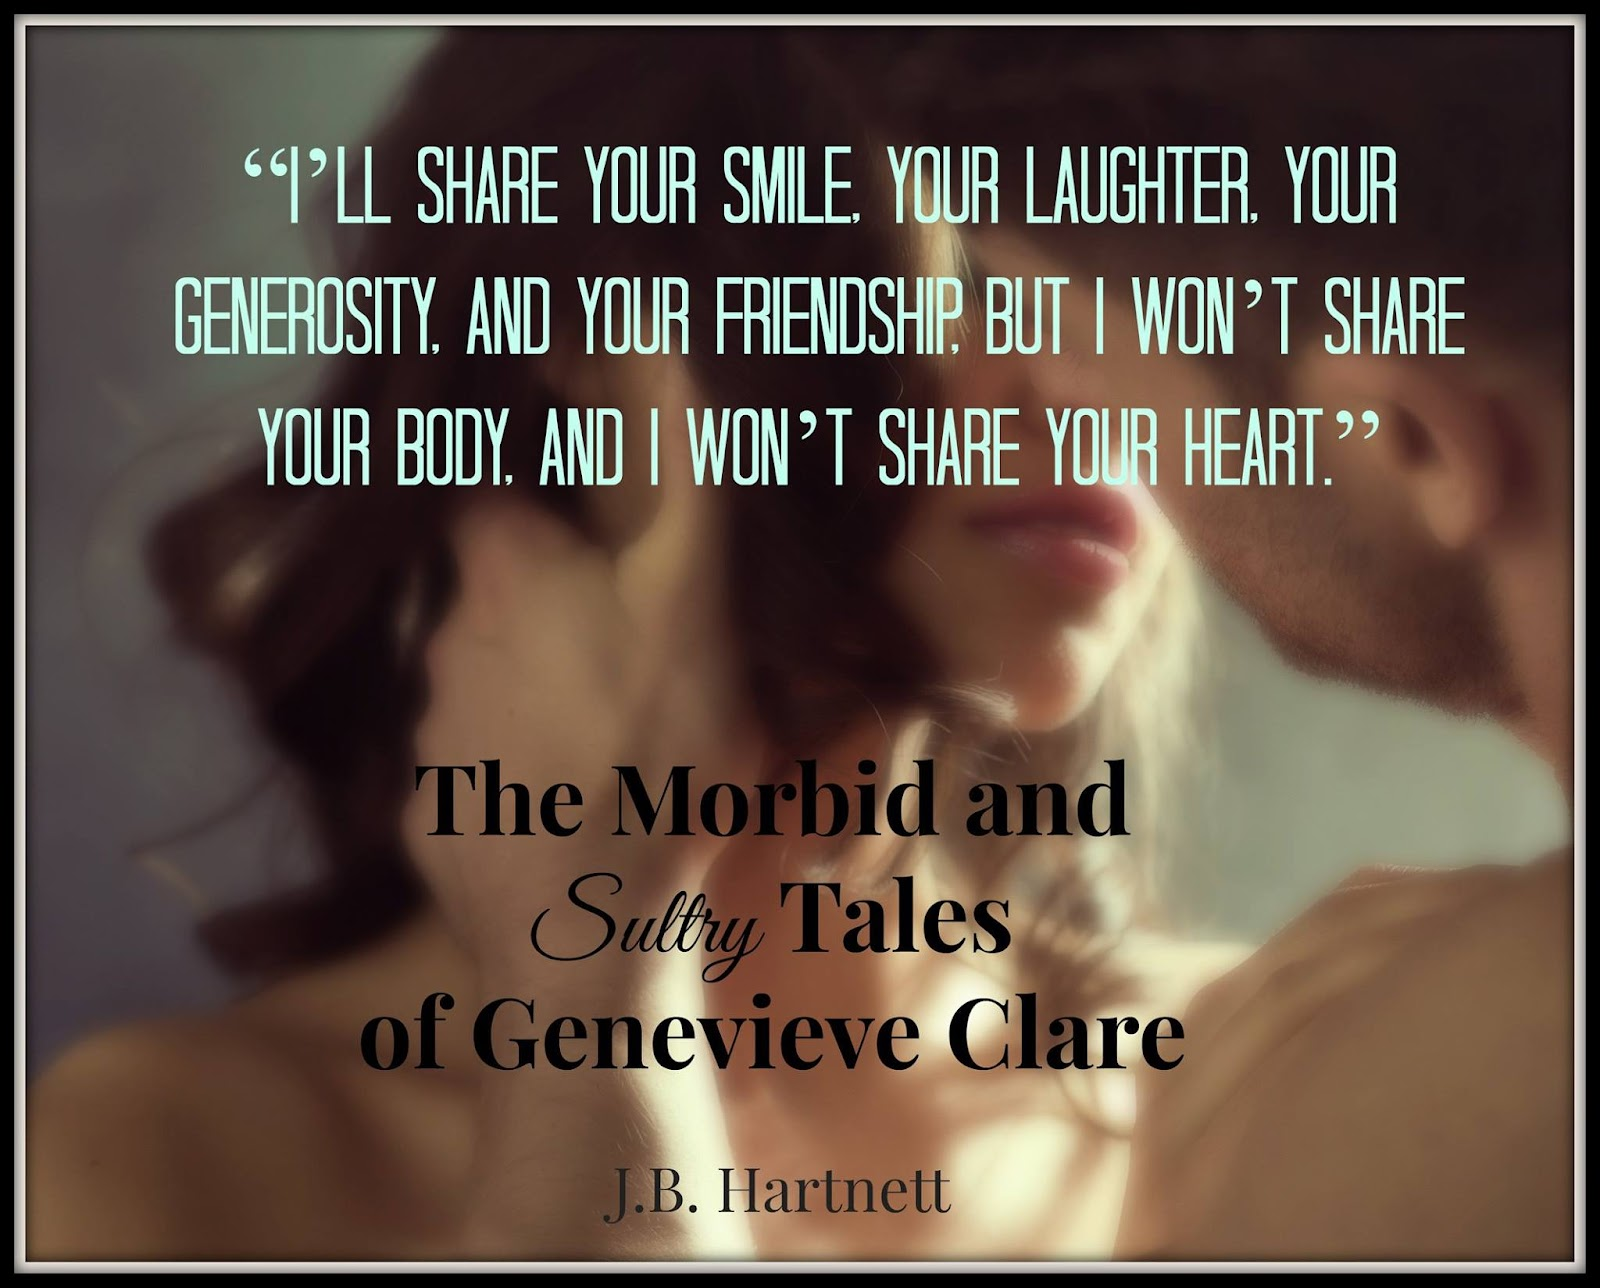 the morbid and sultry taales of Genevieve teaser.jpg